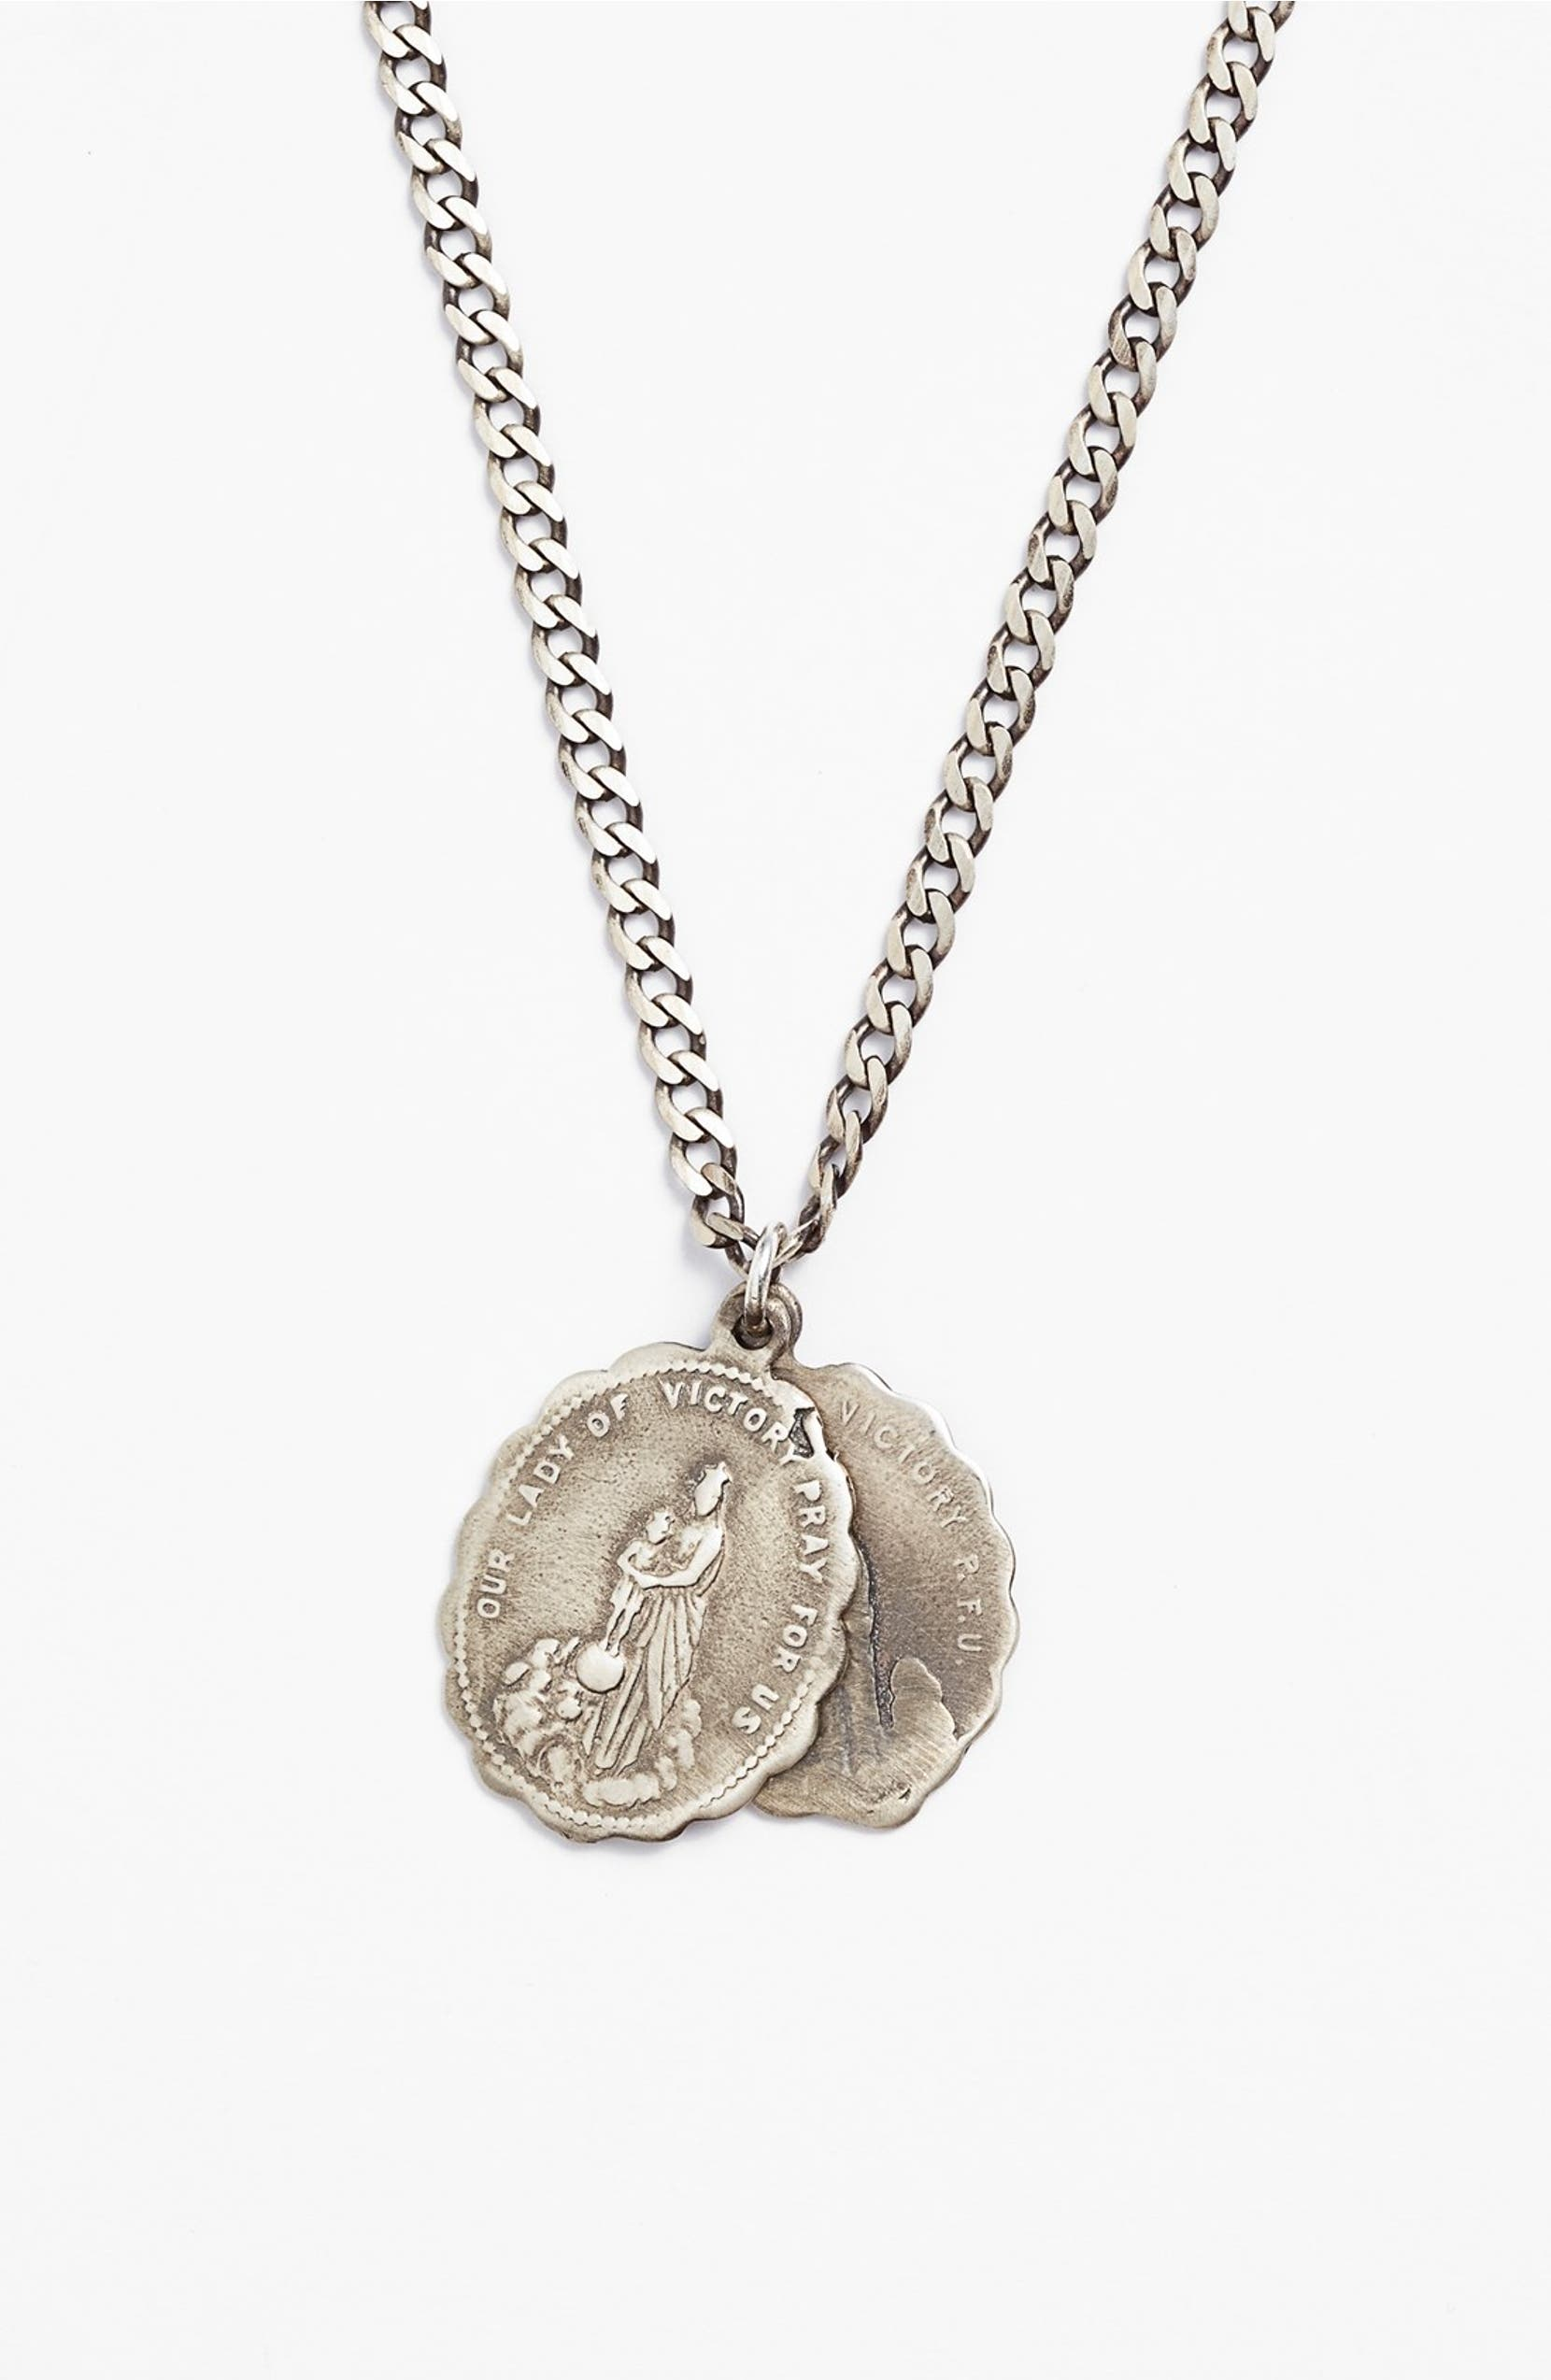 st necklace company antiqued medal saints chain the catholic antique silver benedict